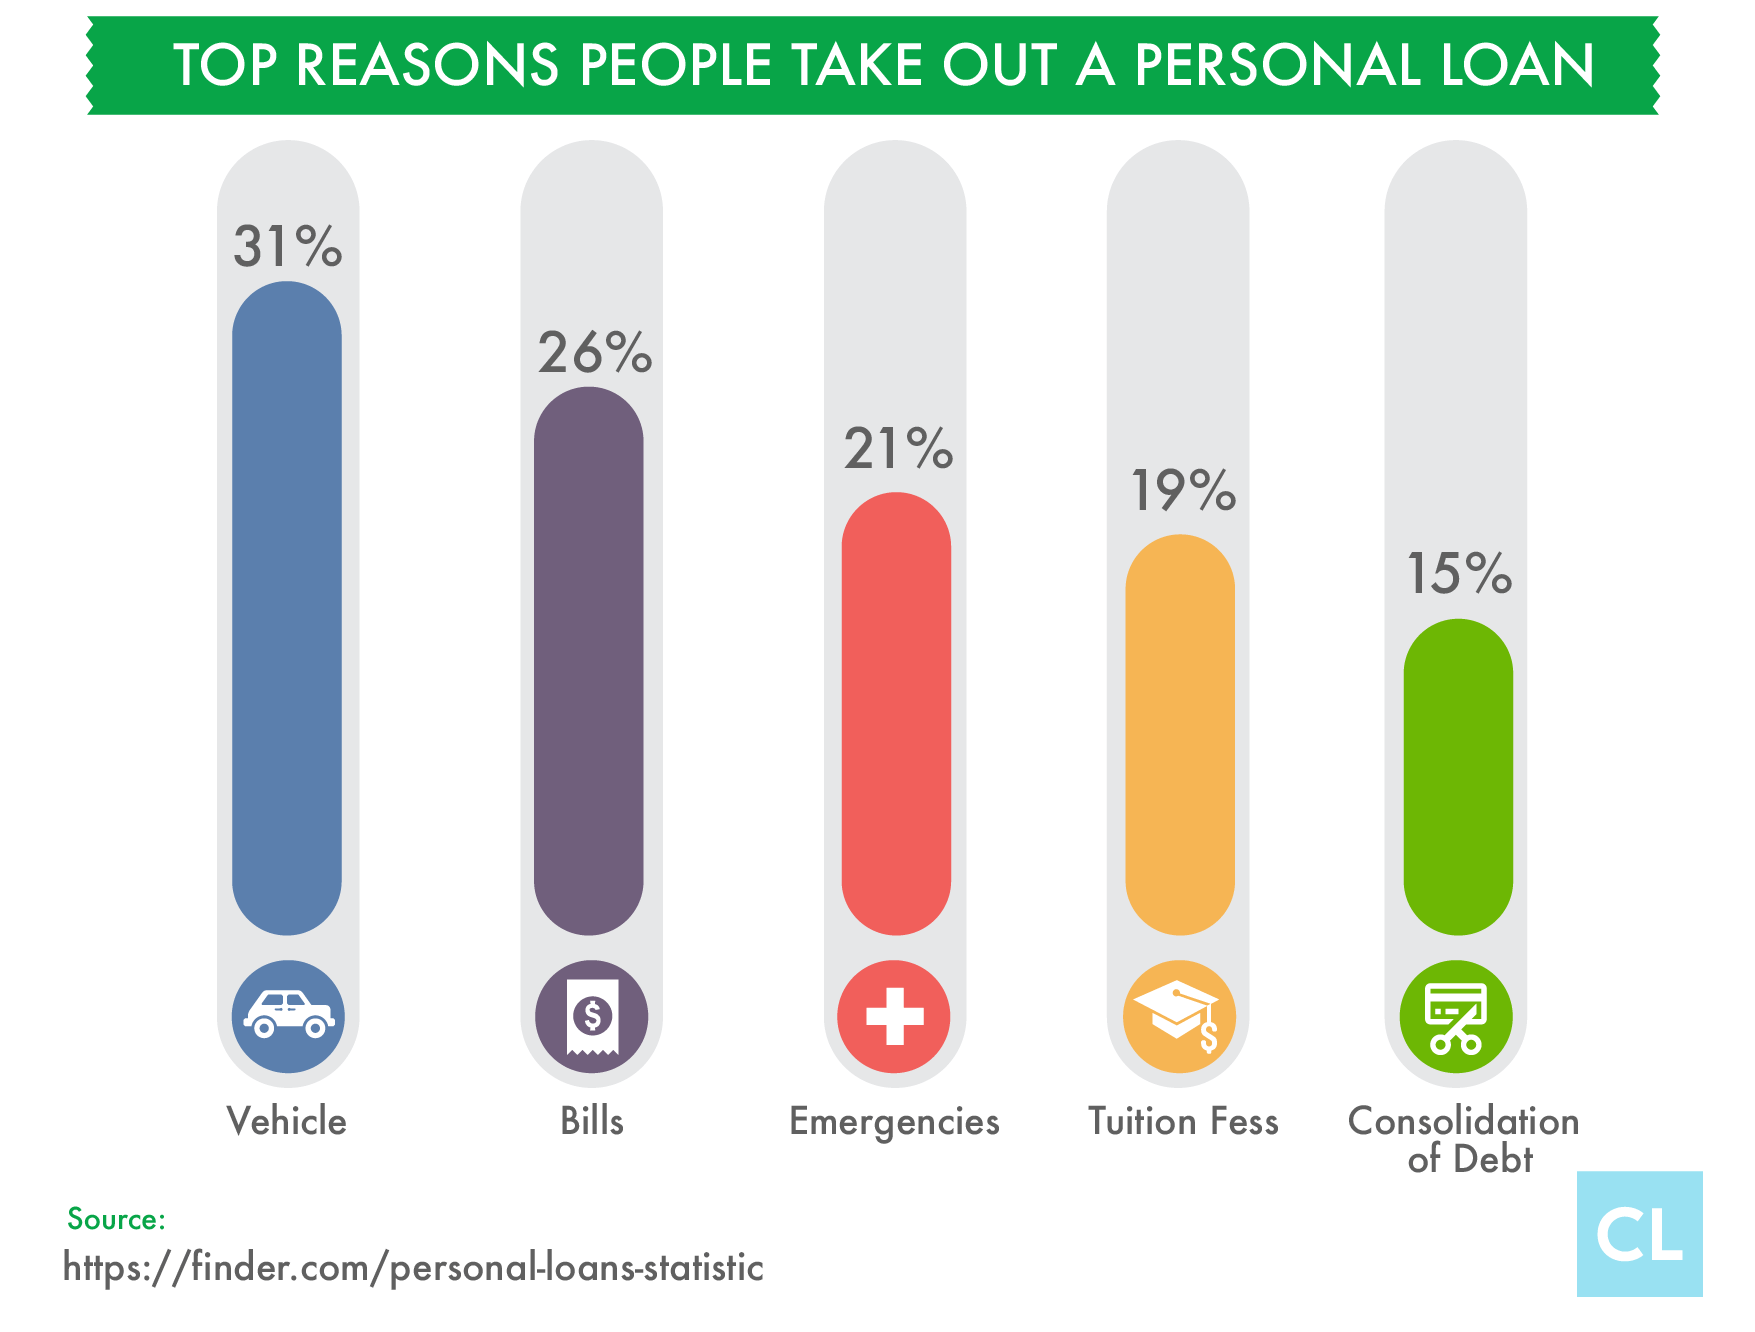 Top Reason to Take Out a Personal Loan